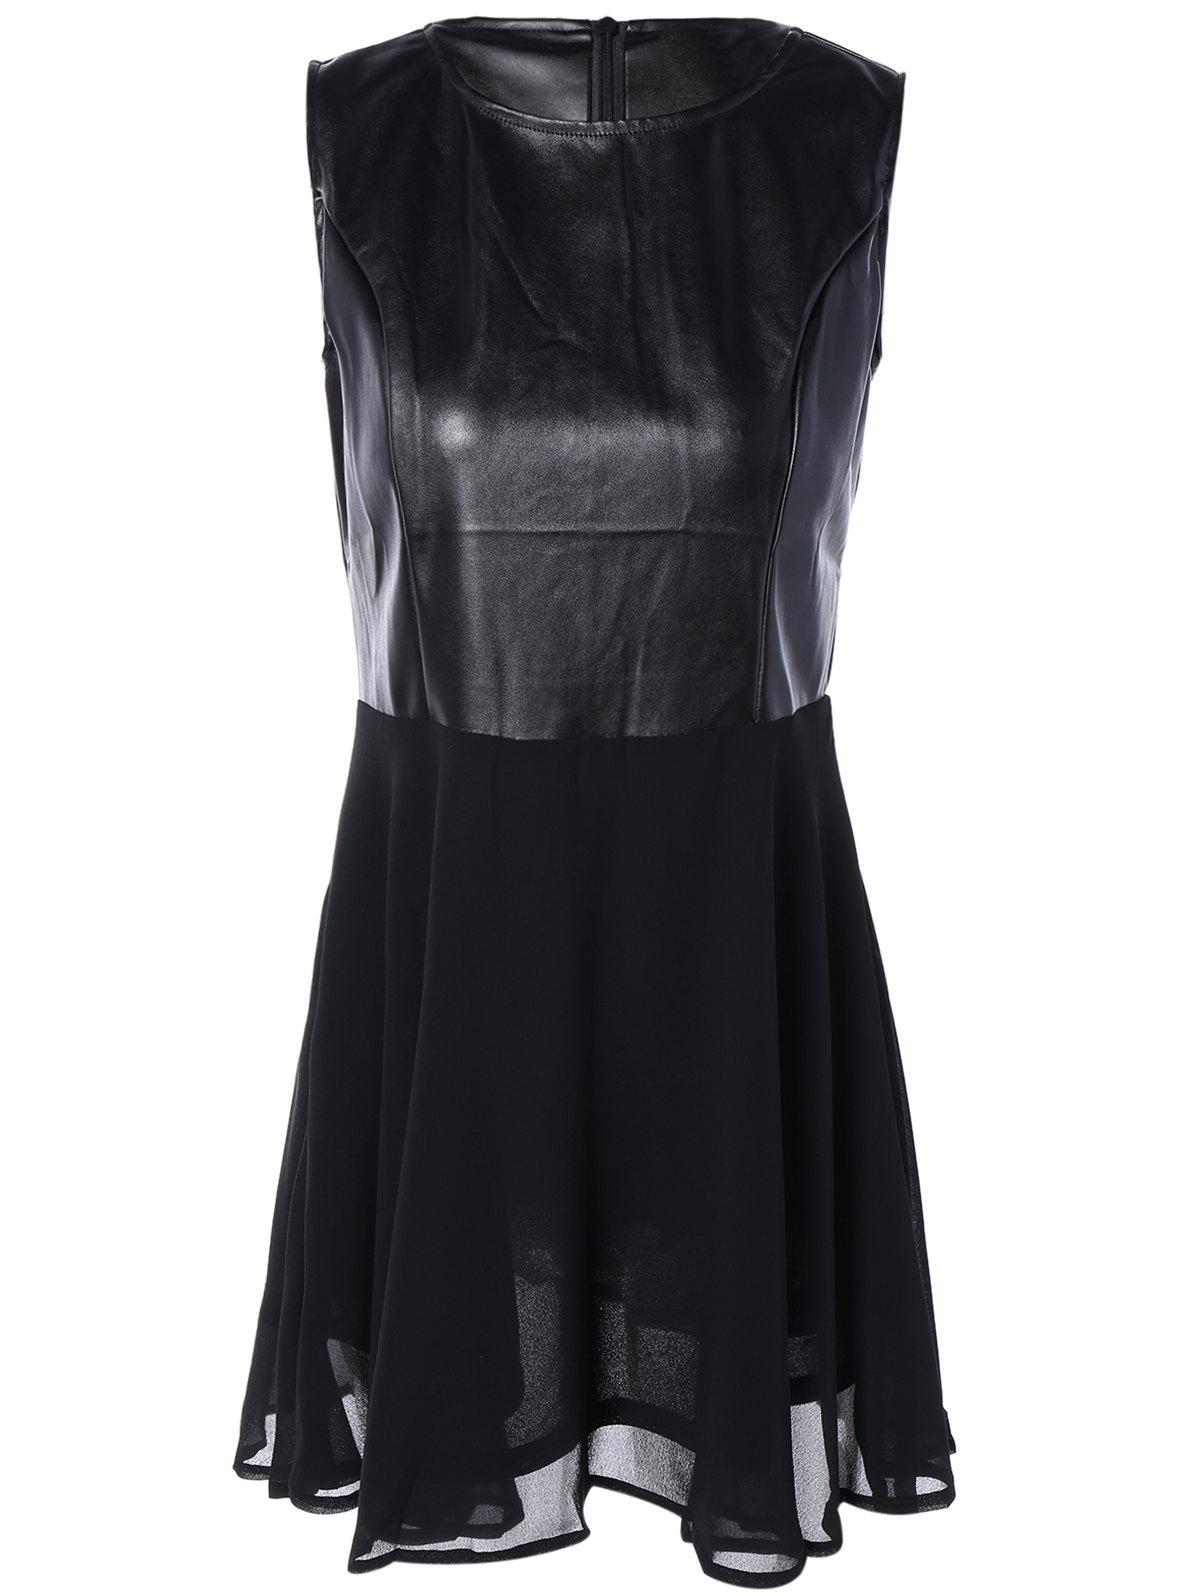 Chiffon Spliced PU Leather High Waist Dress - BLACK S